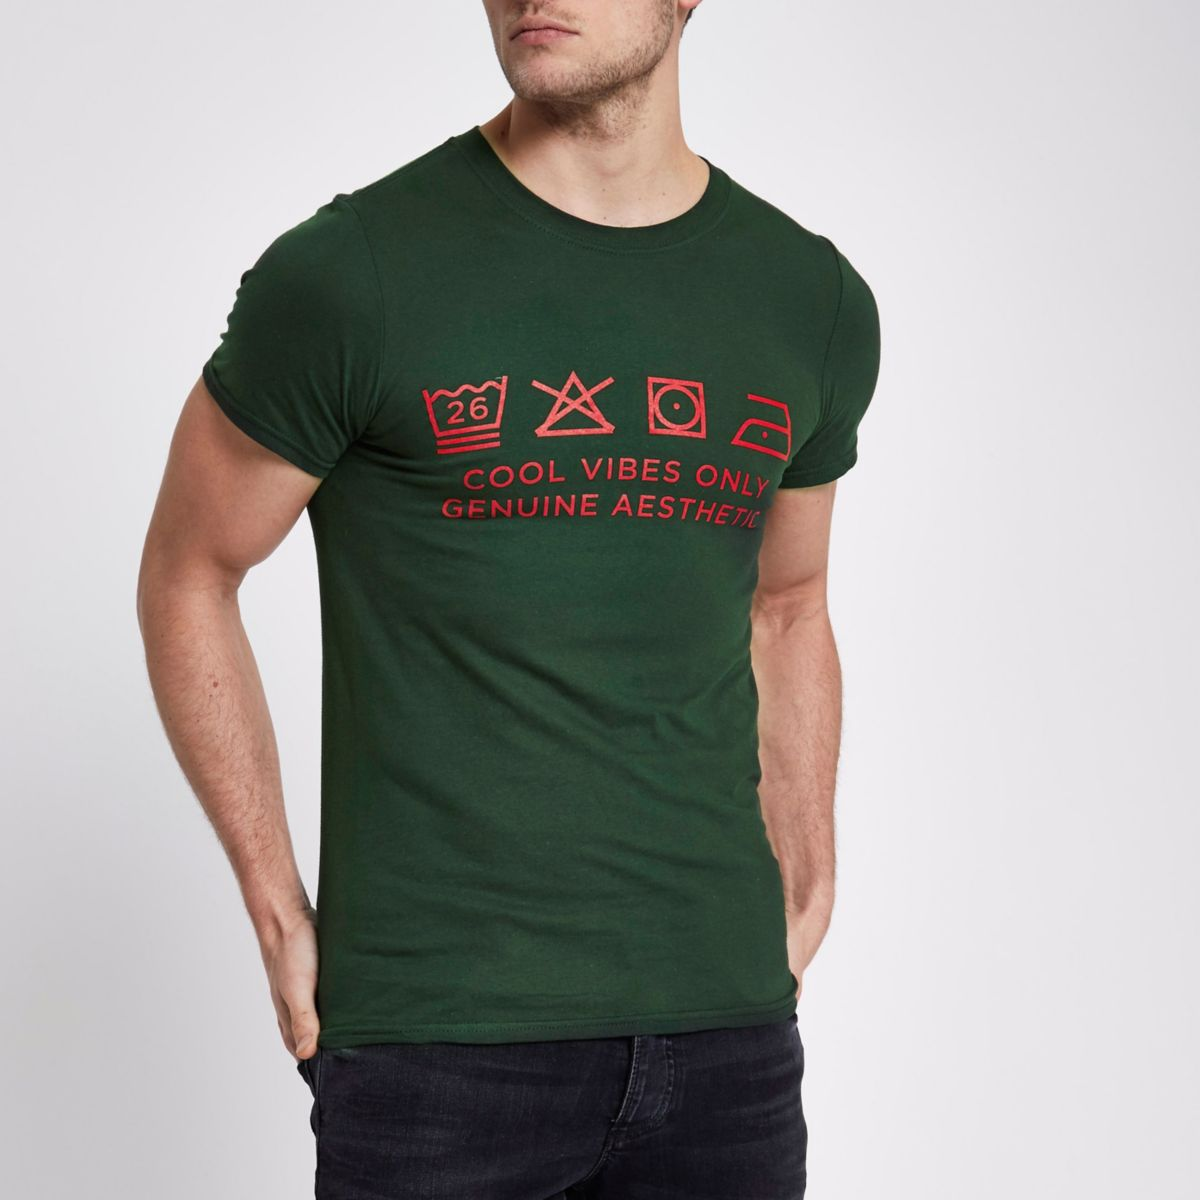 Green Ditch the Label charity T-shirt